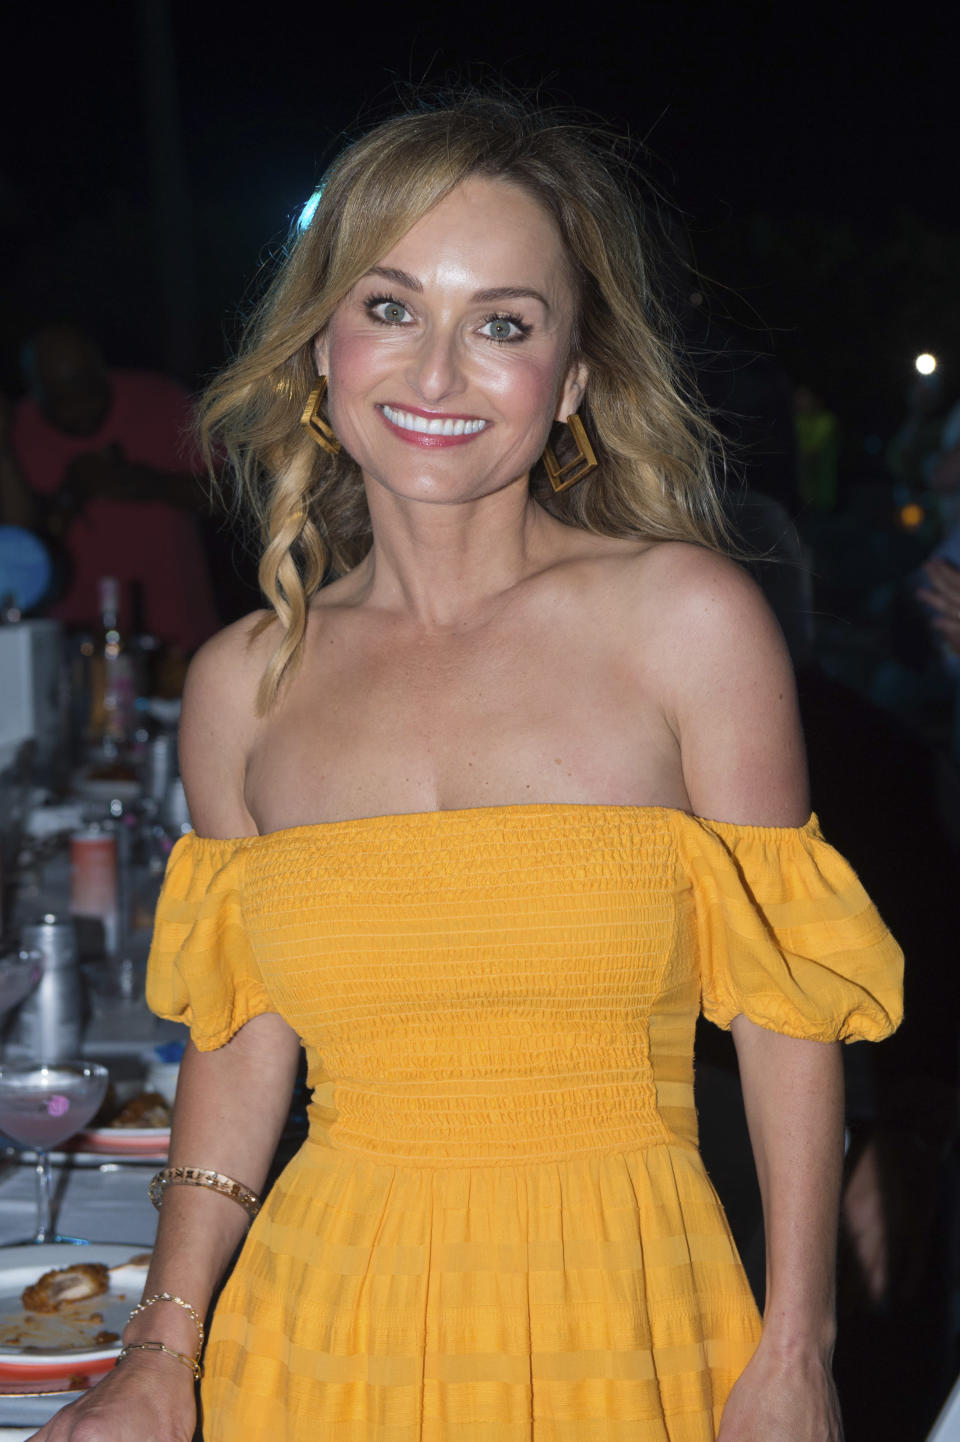 Chef Giada De Laurentiis attends SOBEWFF® 20th Anniversary Celebration at Fontainebleau Hotel on Thursday, May 20, 2021, in Miami Beach, Fla. (Photo by Scott Roth/Invision/AP)